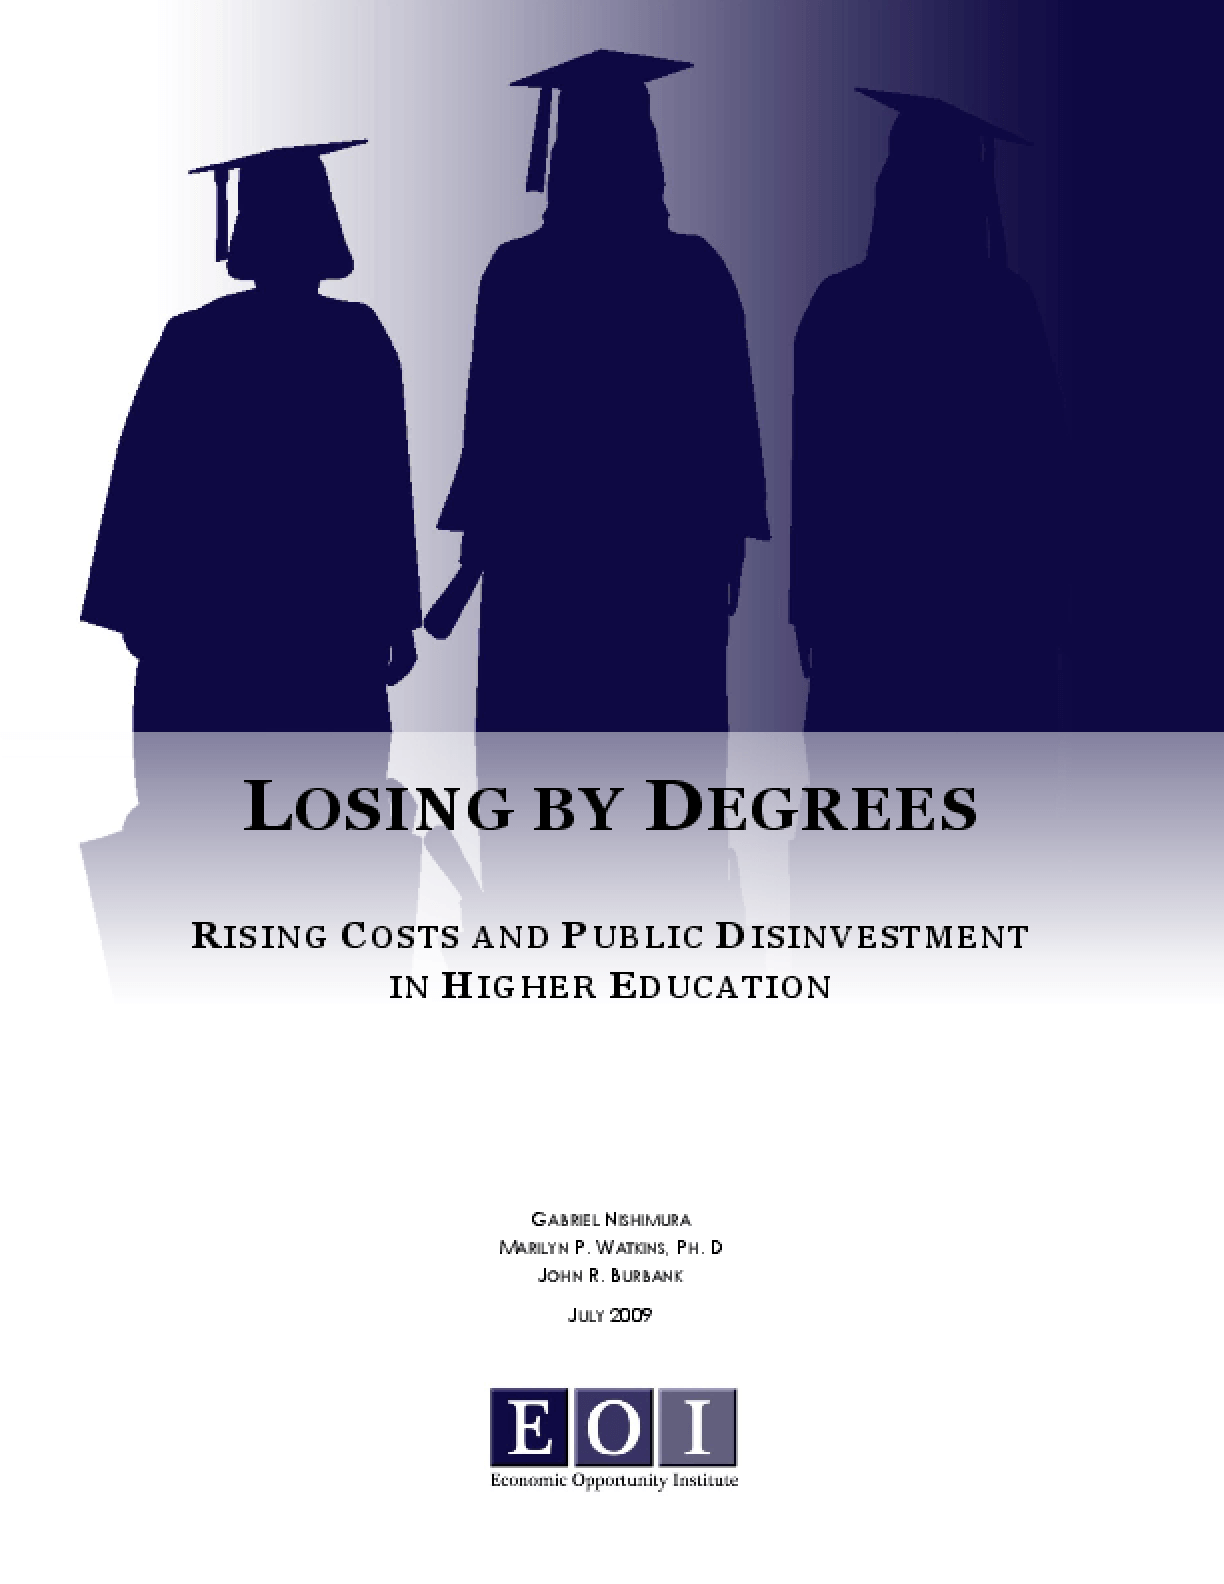 Losing by Degrees: Rising Costs and Public Disinvestment in Higher Education